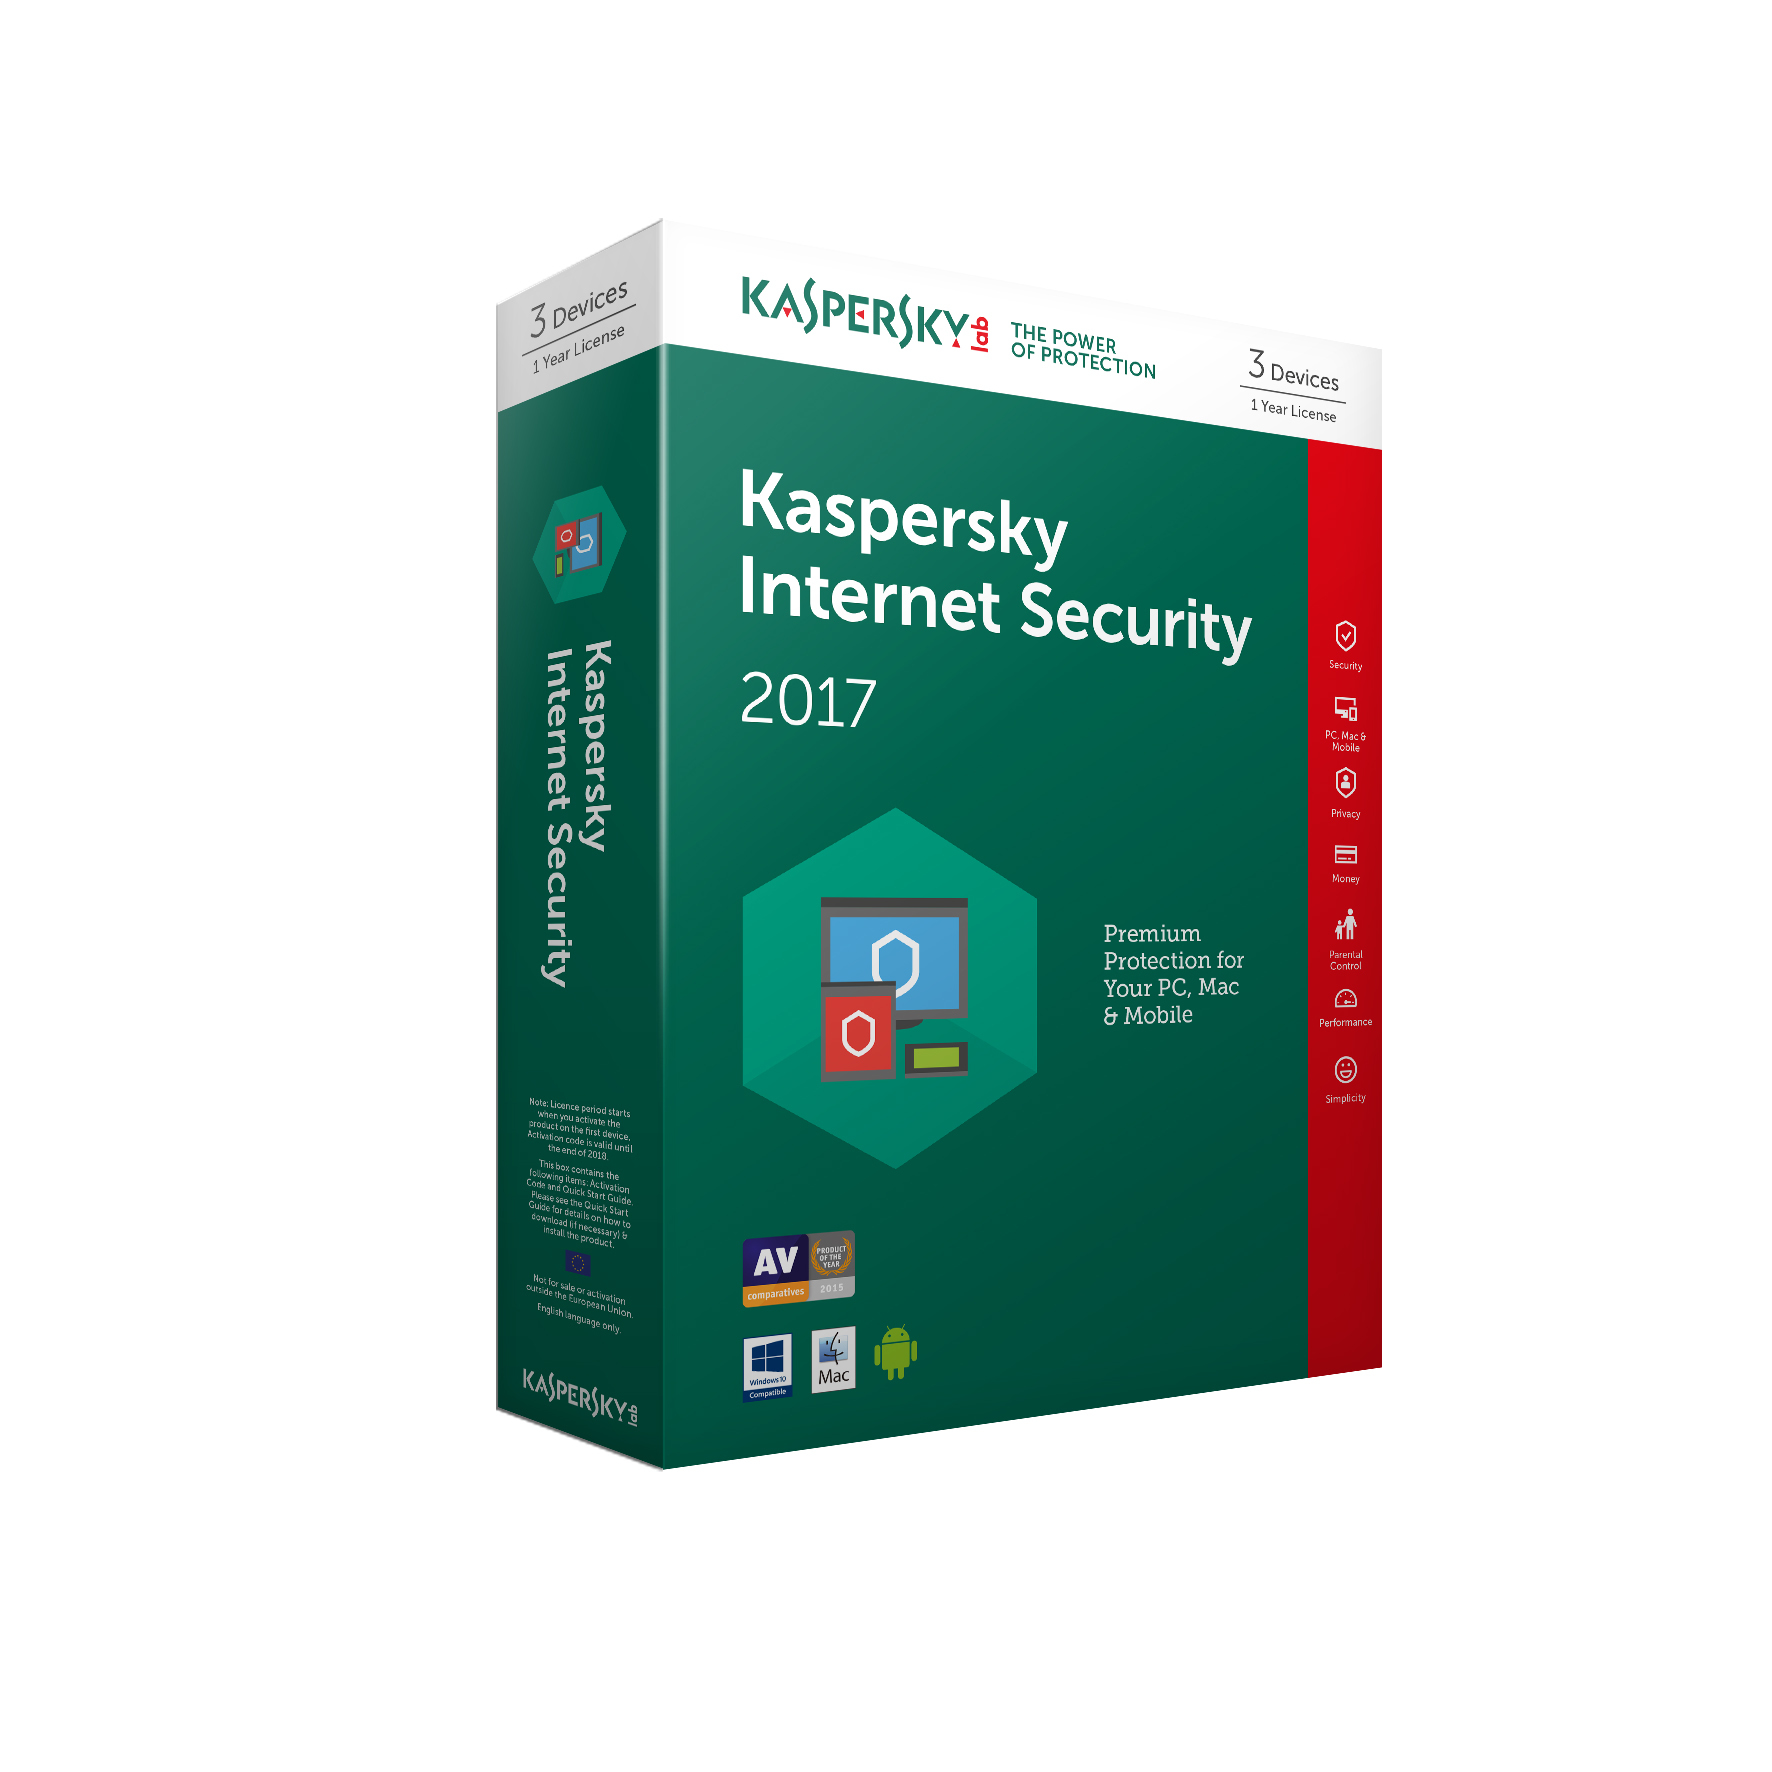 Kaspersky Lab Kaspersky Internet Security 2017 - 3 Devices 1 Year (Standard Packaging)